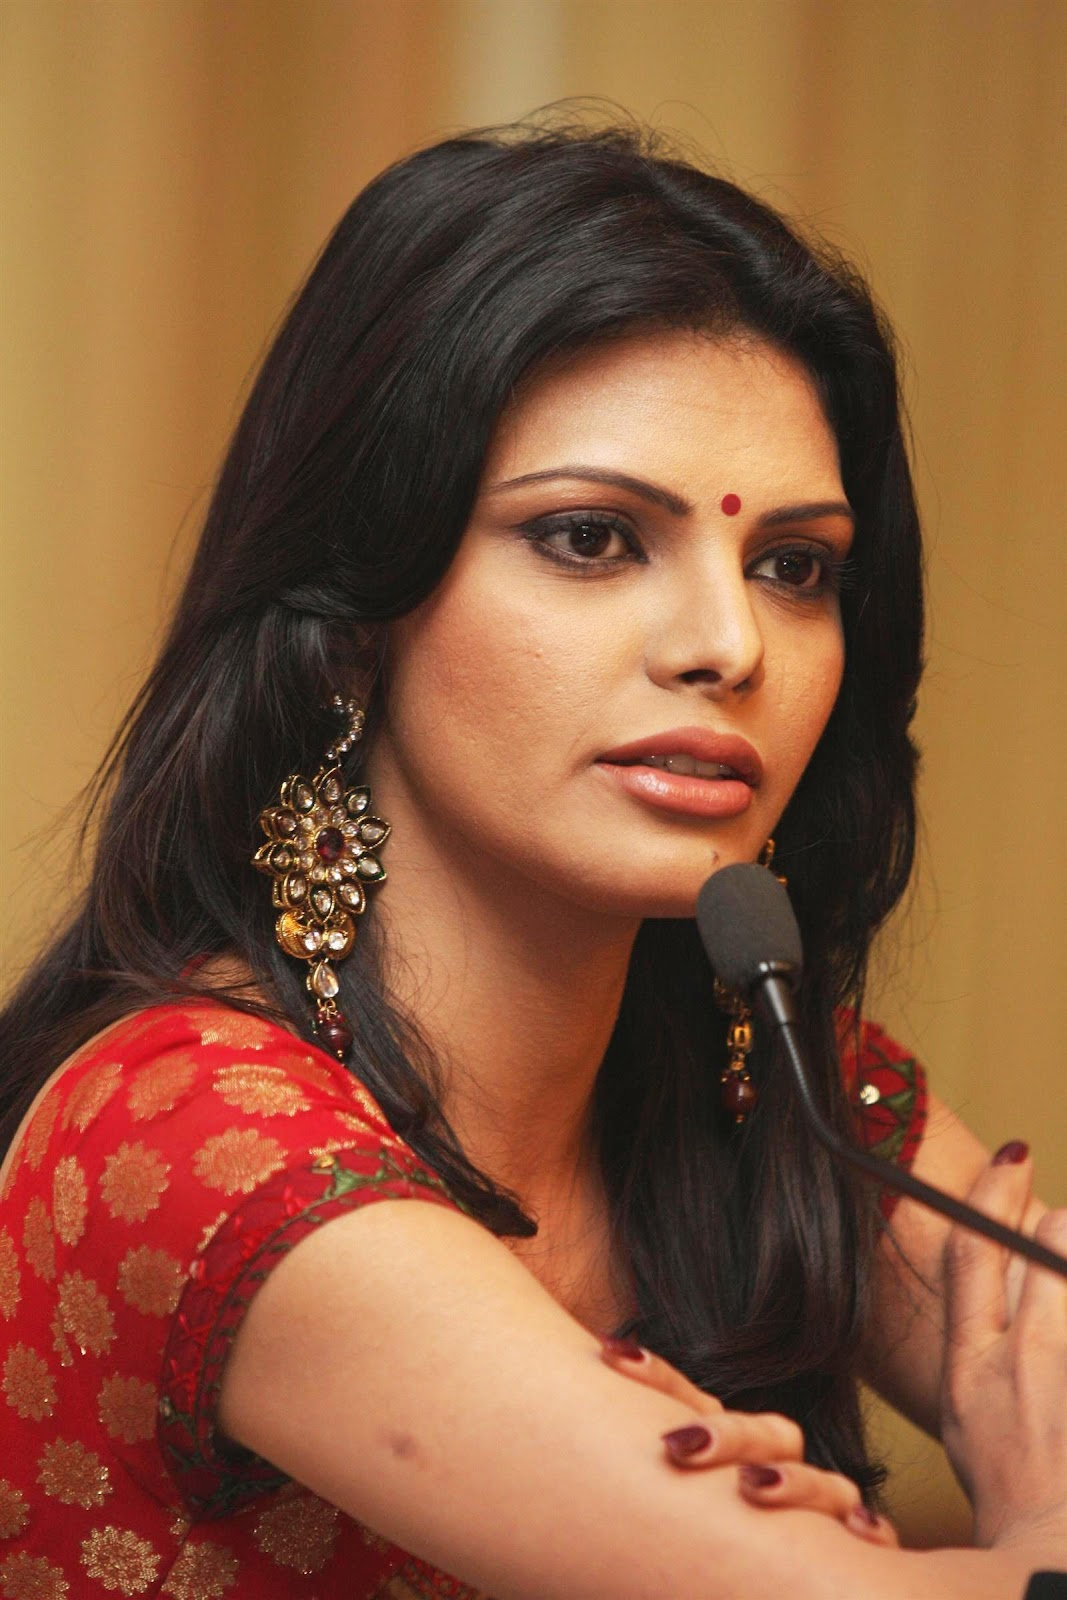 High Quality Bollywood Celebrity Pictures Sherlyn Chopra -1669